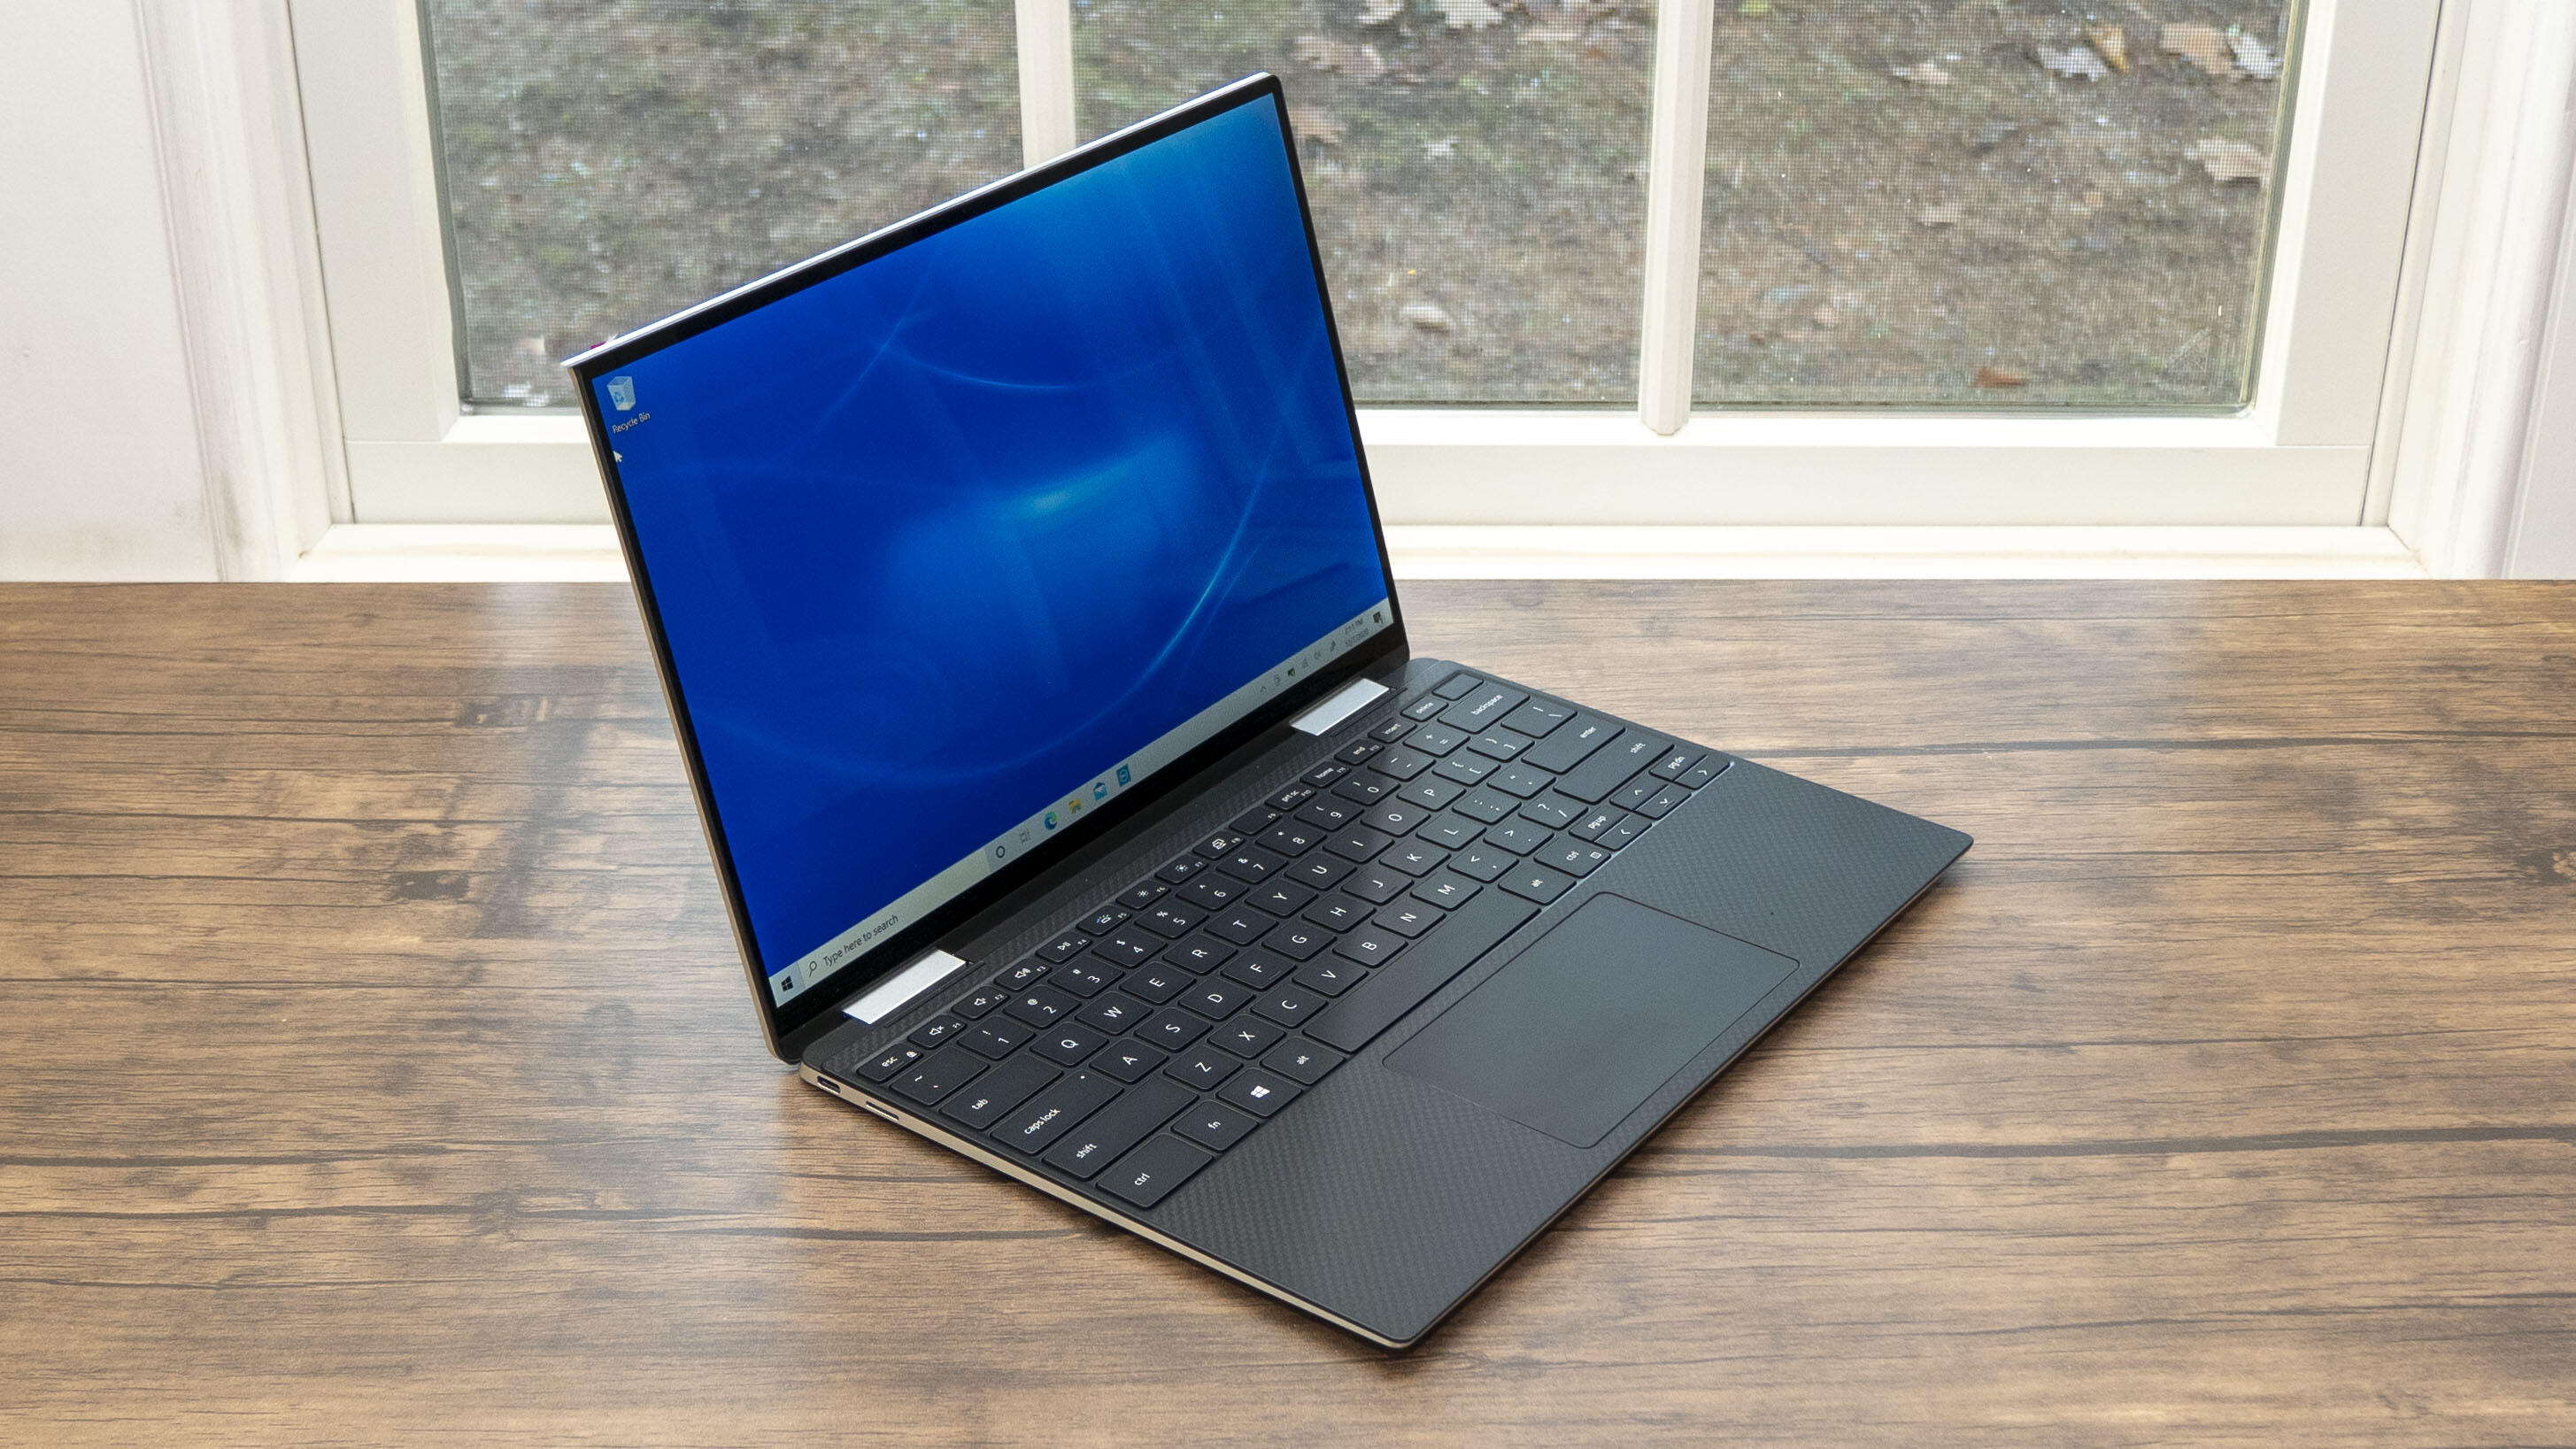 dell xps 13 2 in 1 05 | Best MacBook Pro alternatives for 2021 | The Paradise